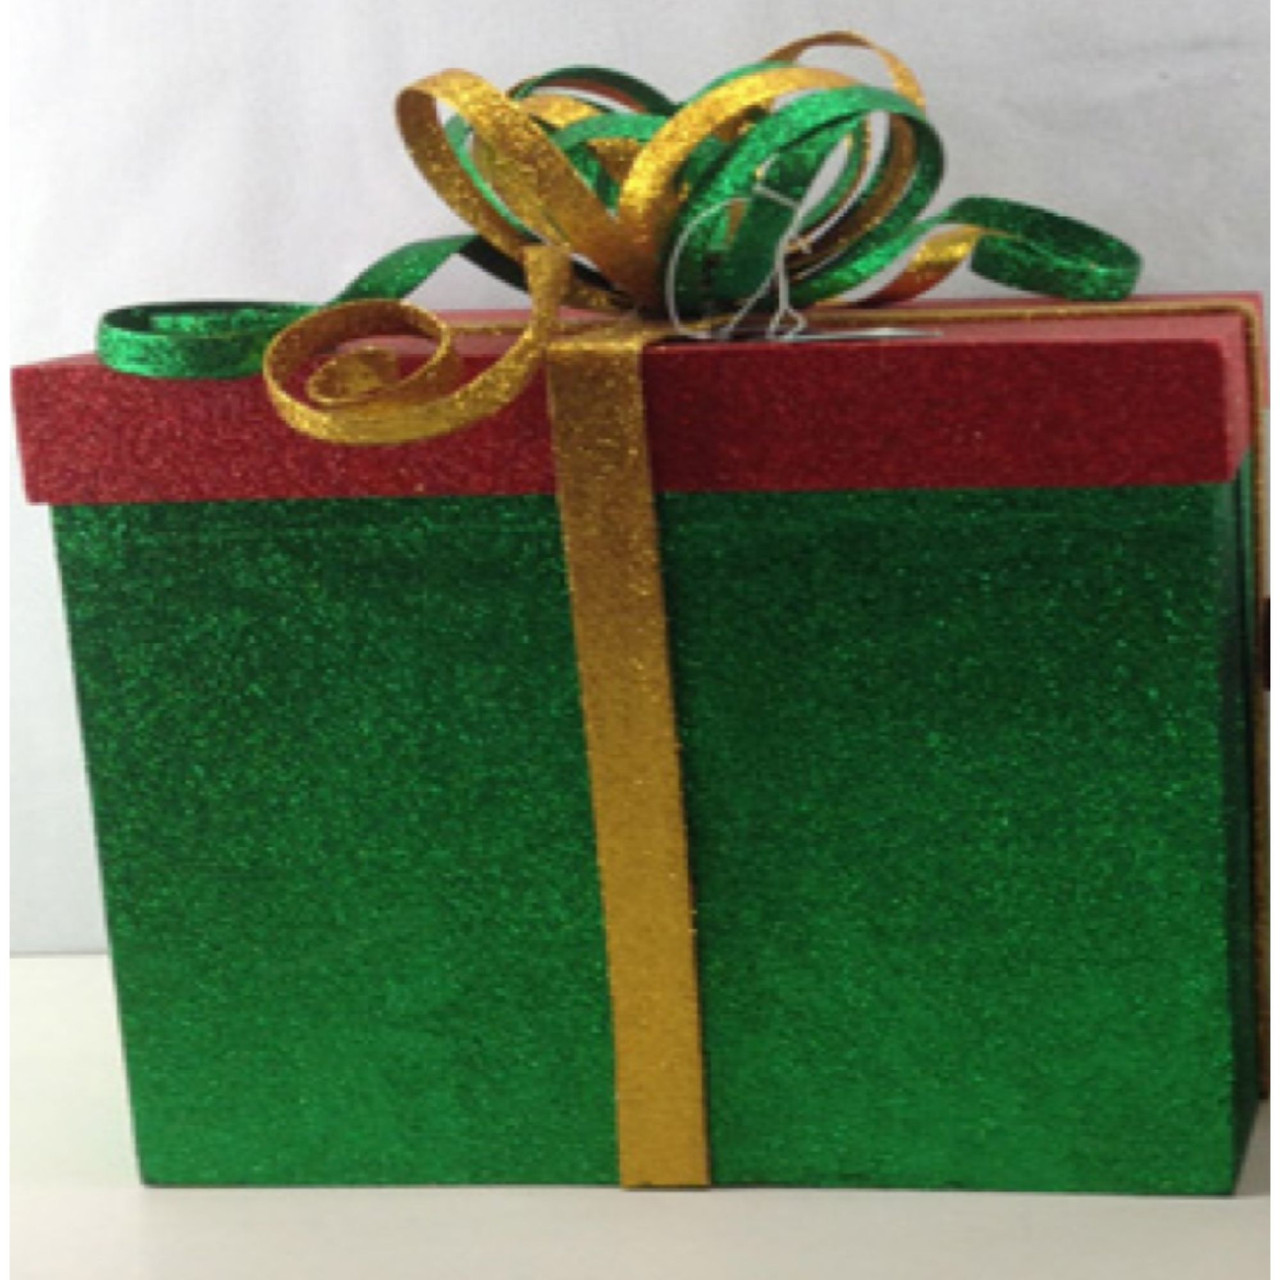 2 Piece Green Red Gold Glittered Gift Box Christmas Decoration 14